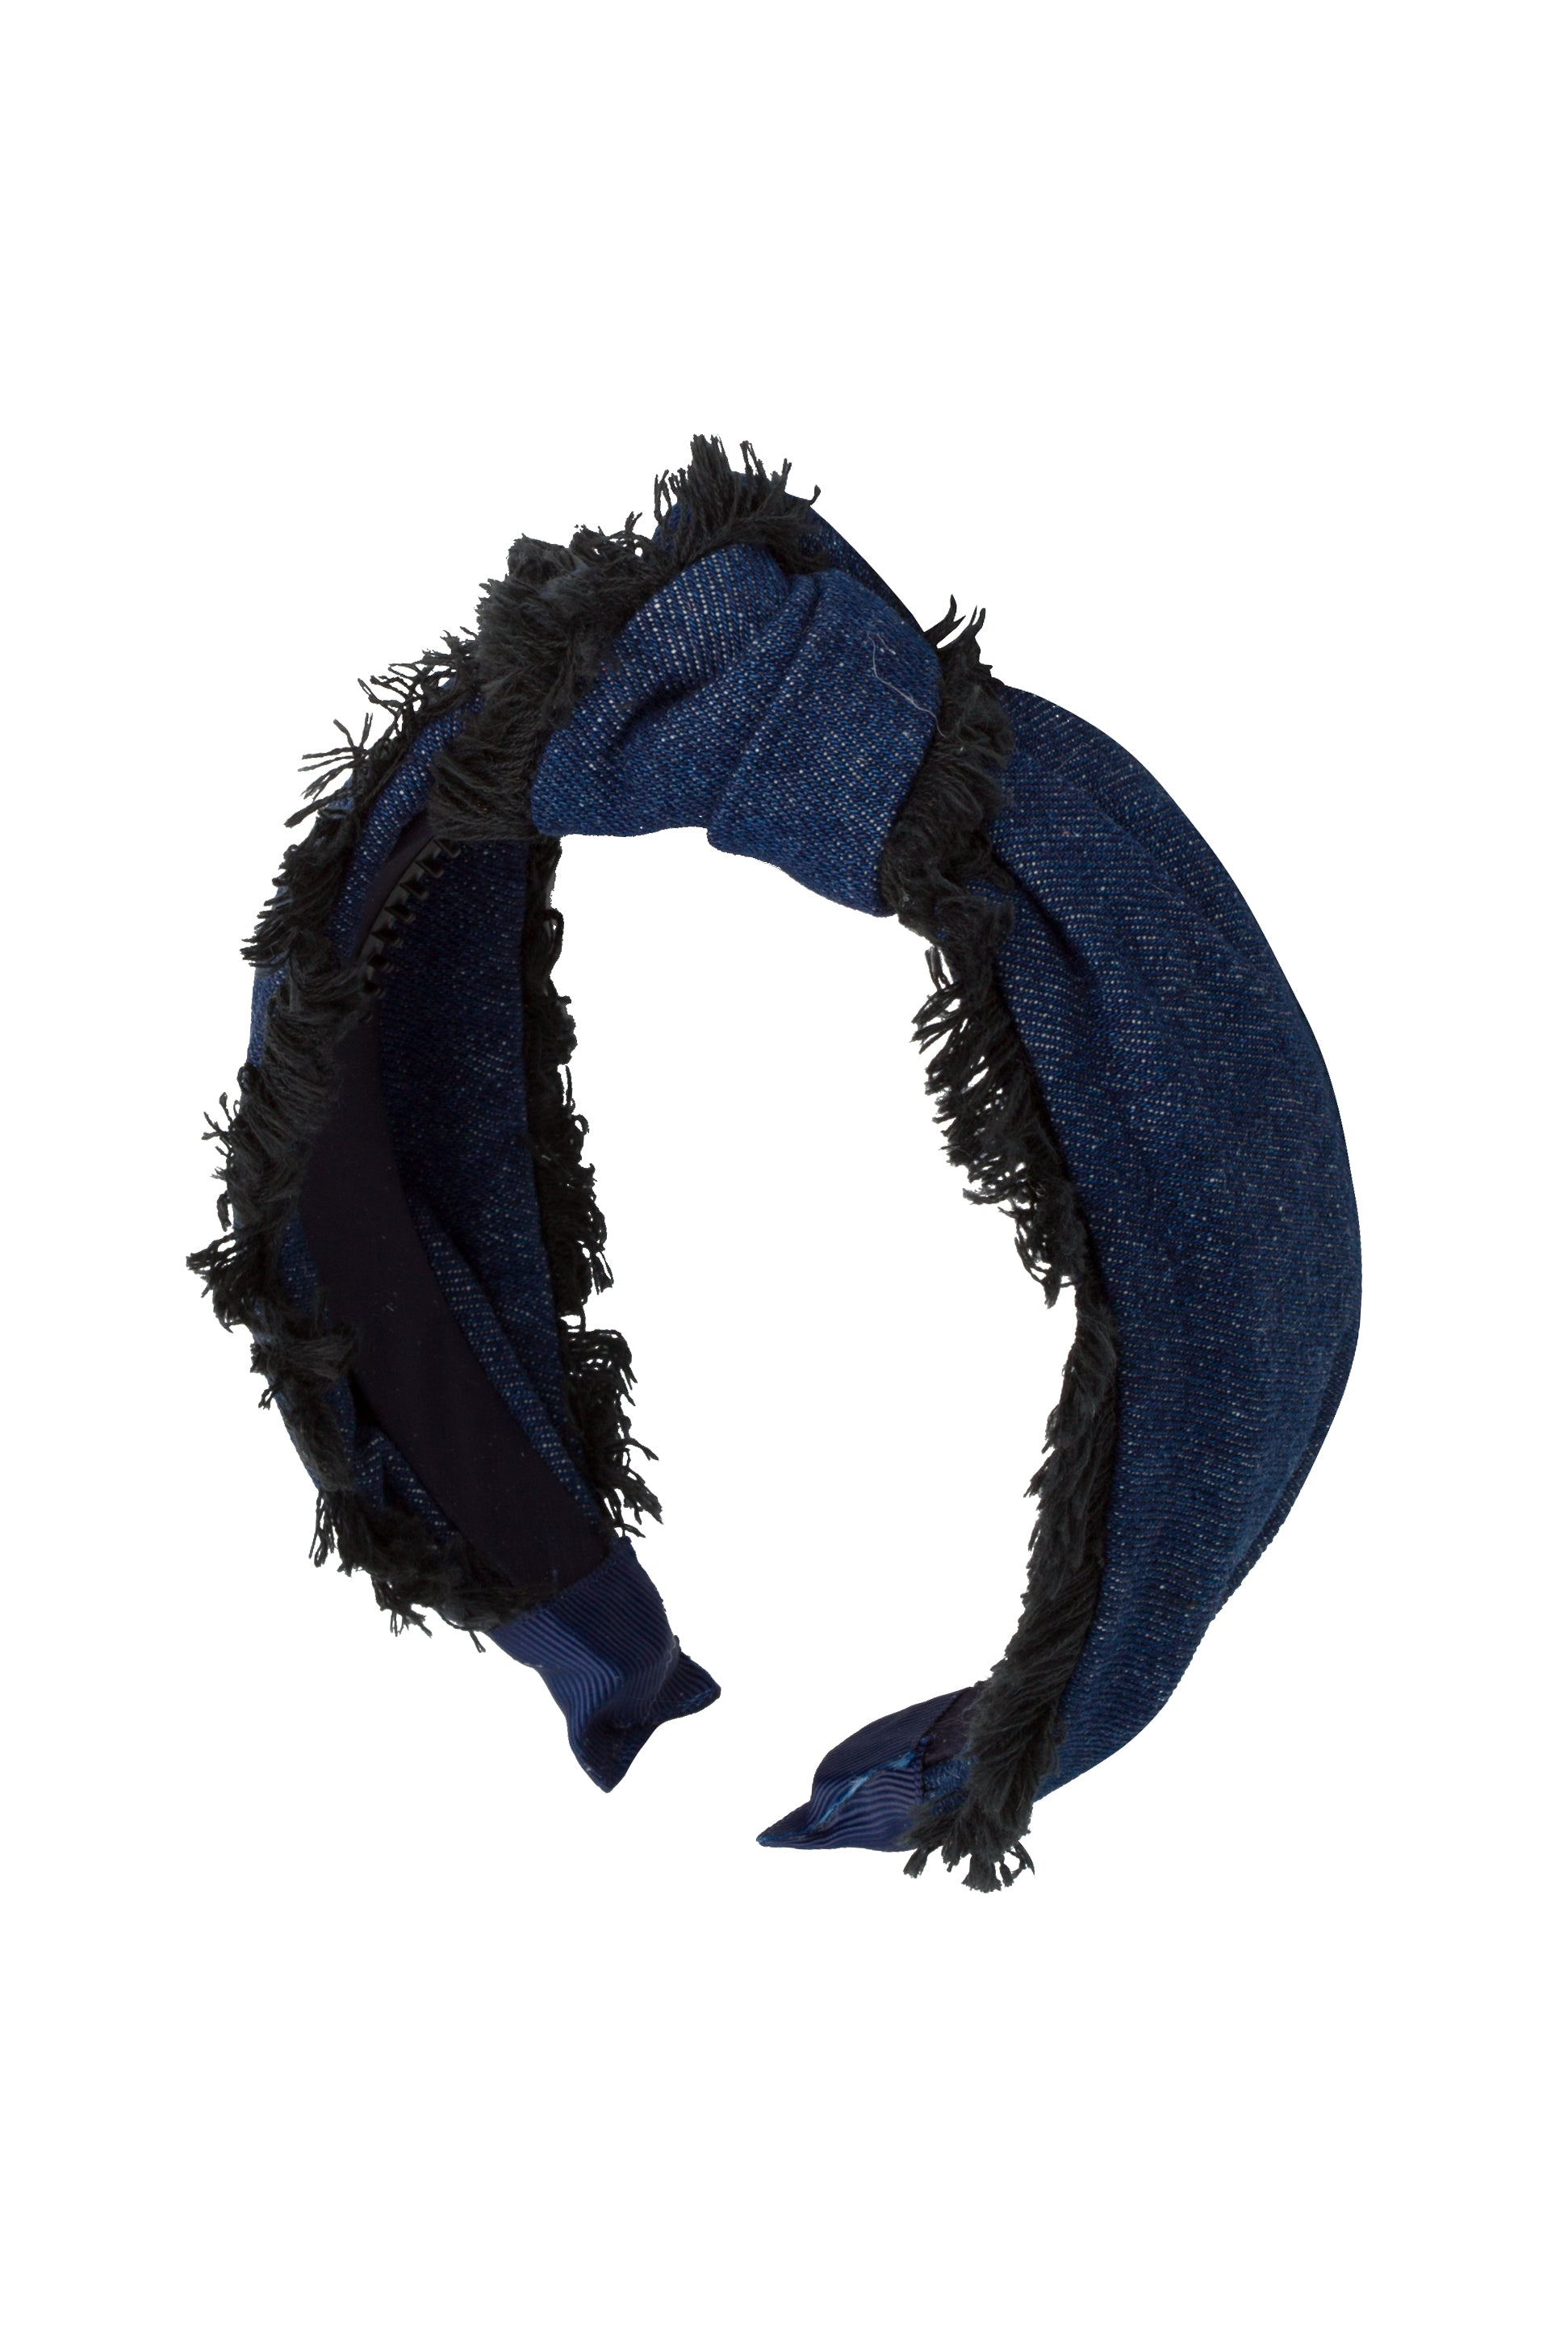 Knot Fringe Headband - Dark Blue Denim - PROJECT 6, modest fashion